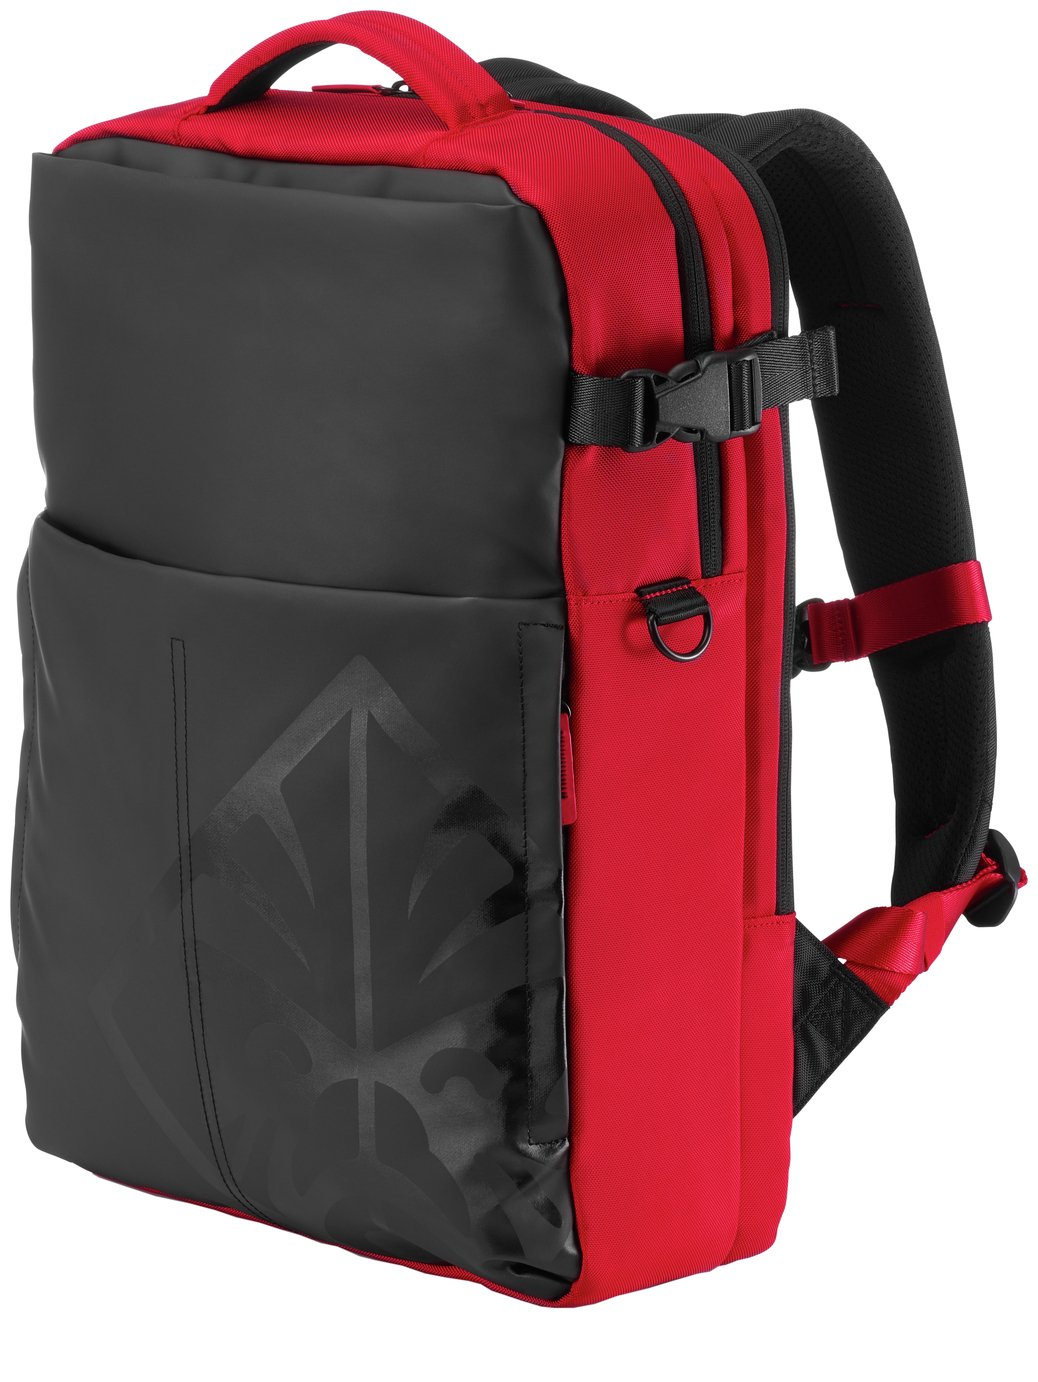 HP Omen 17.3 Inch Laptop Backpack - Red from HP